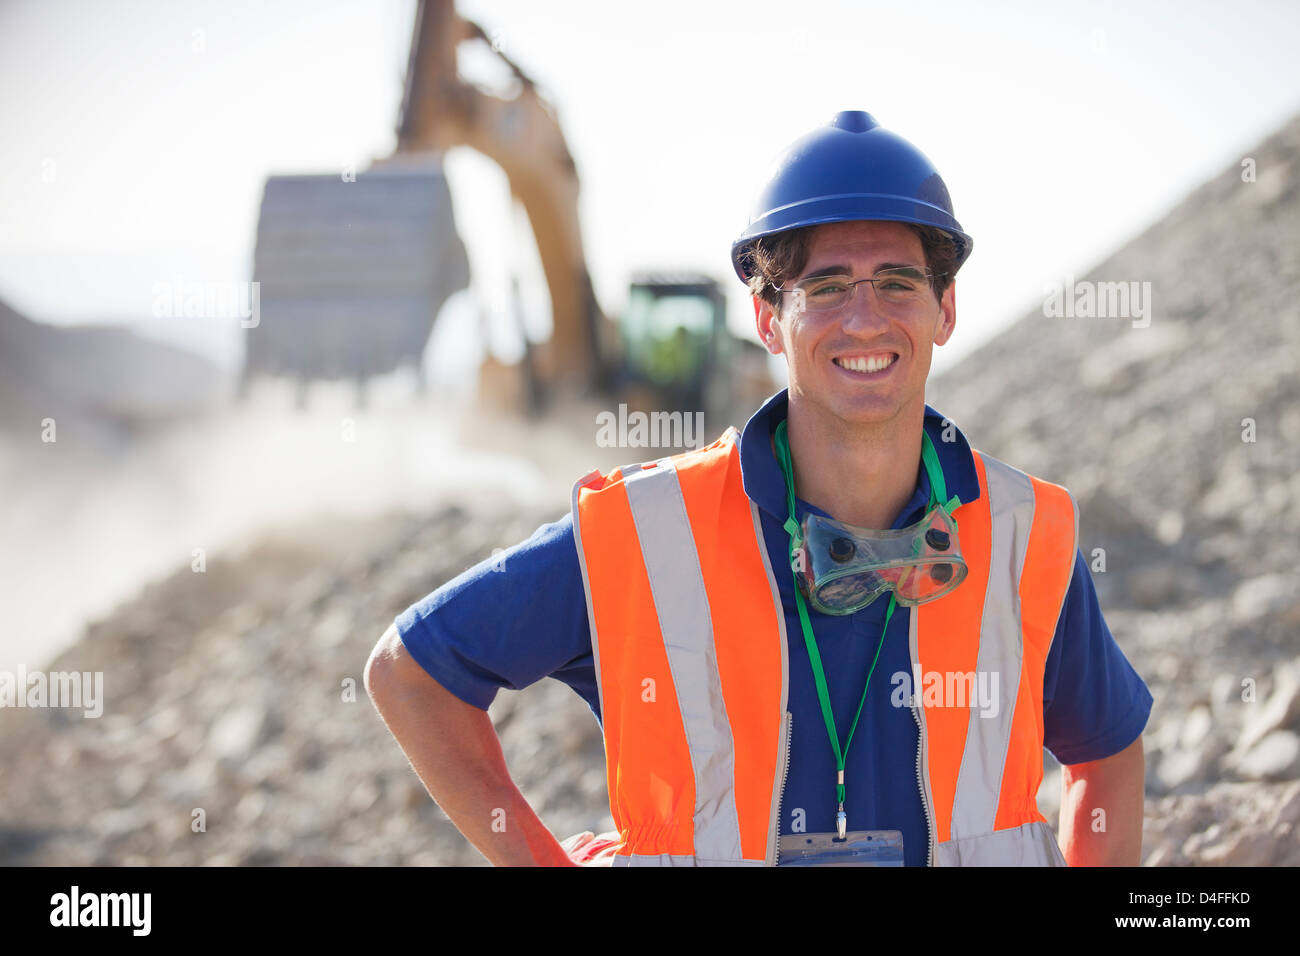 Worker smiling in quarry Photo Stock